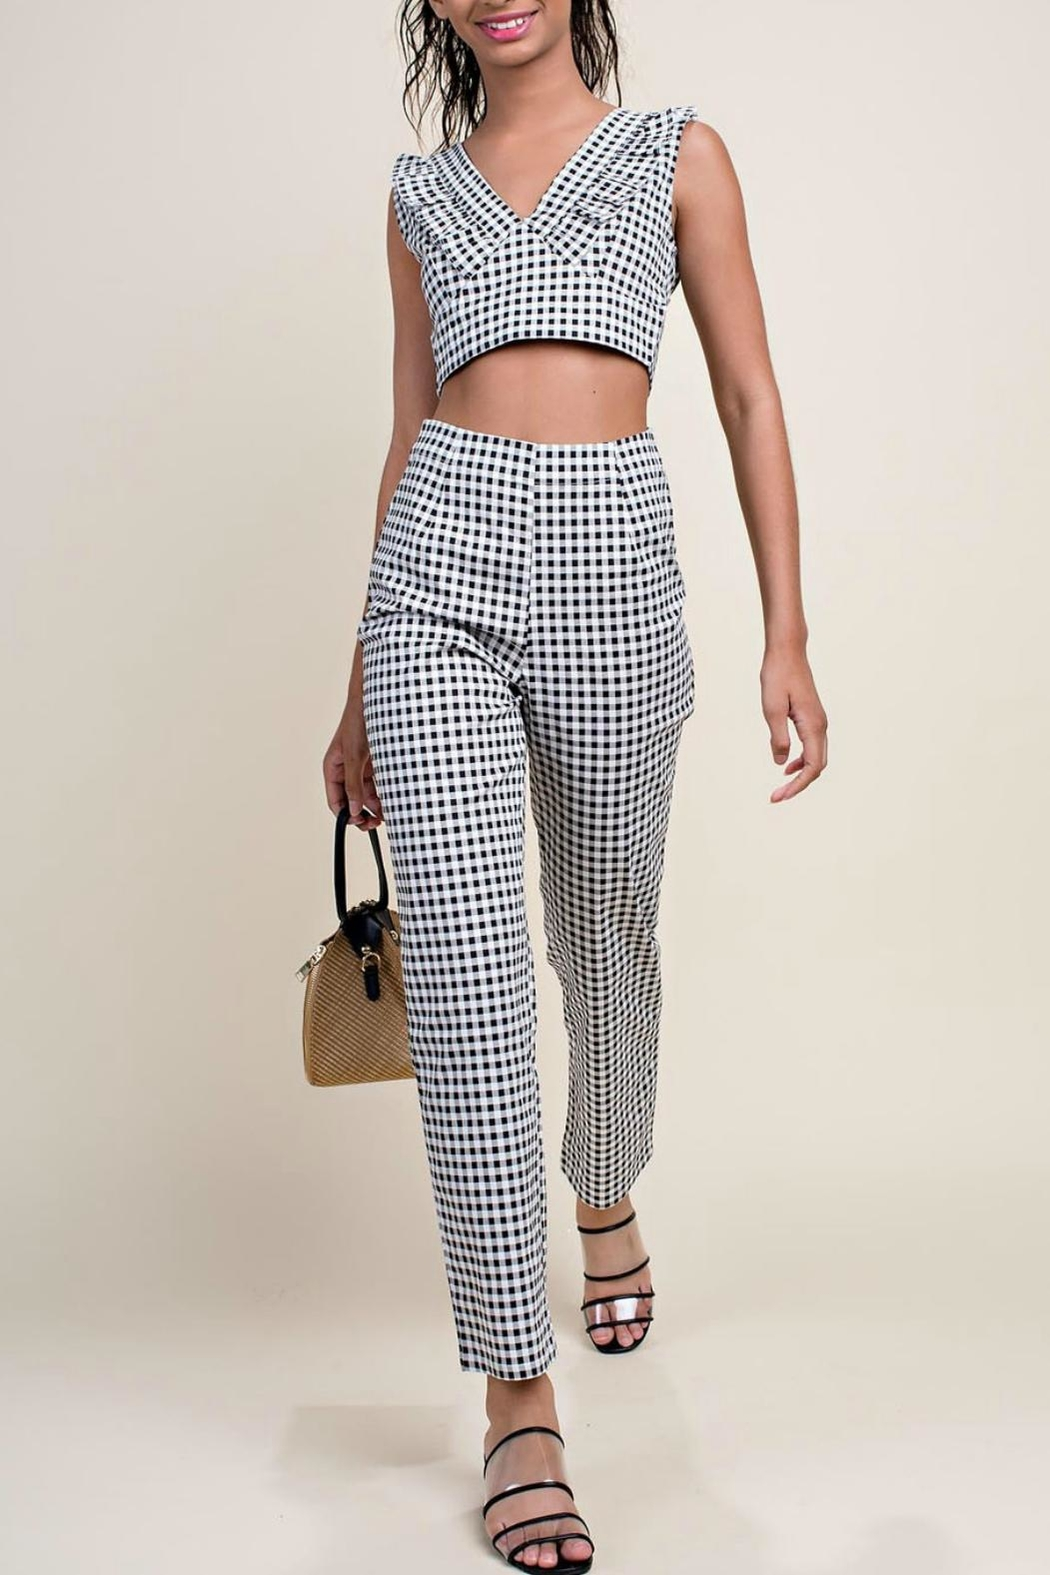 Pretty Little Things Gingham Stretch Pants - Main Image